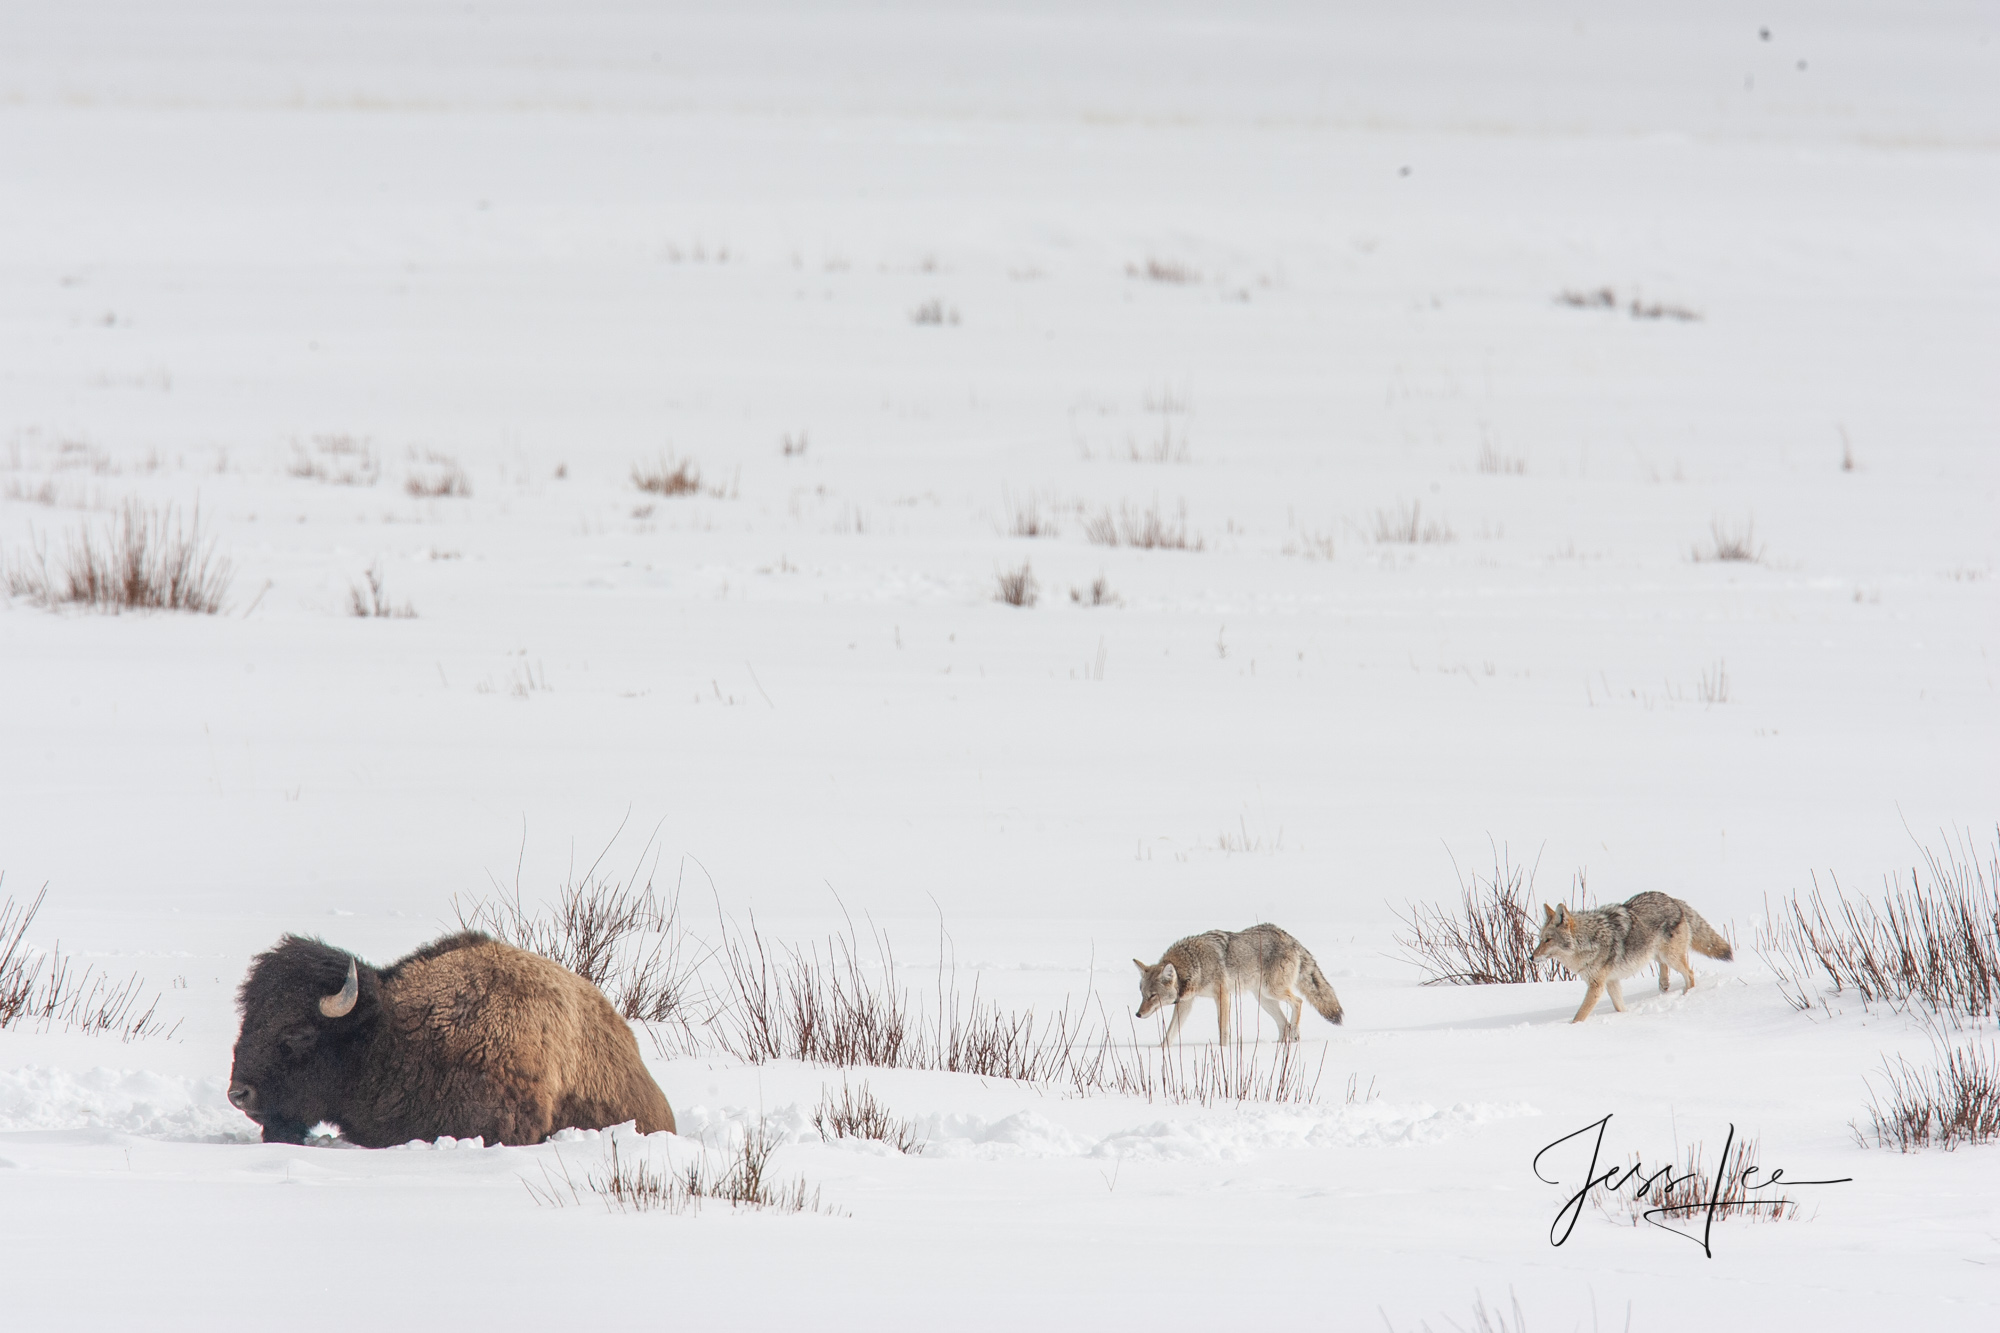 Bison and coyote in snow, yellowstone, winter , 07, snow, photo